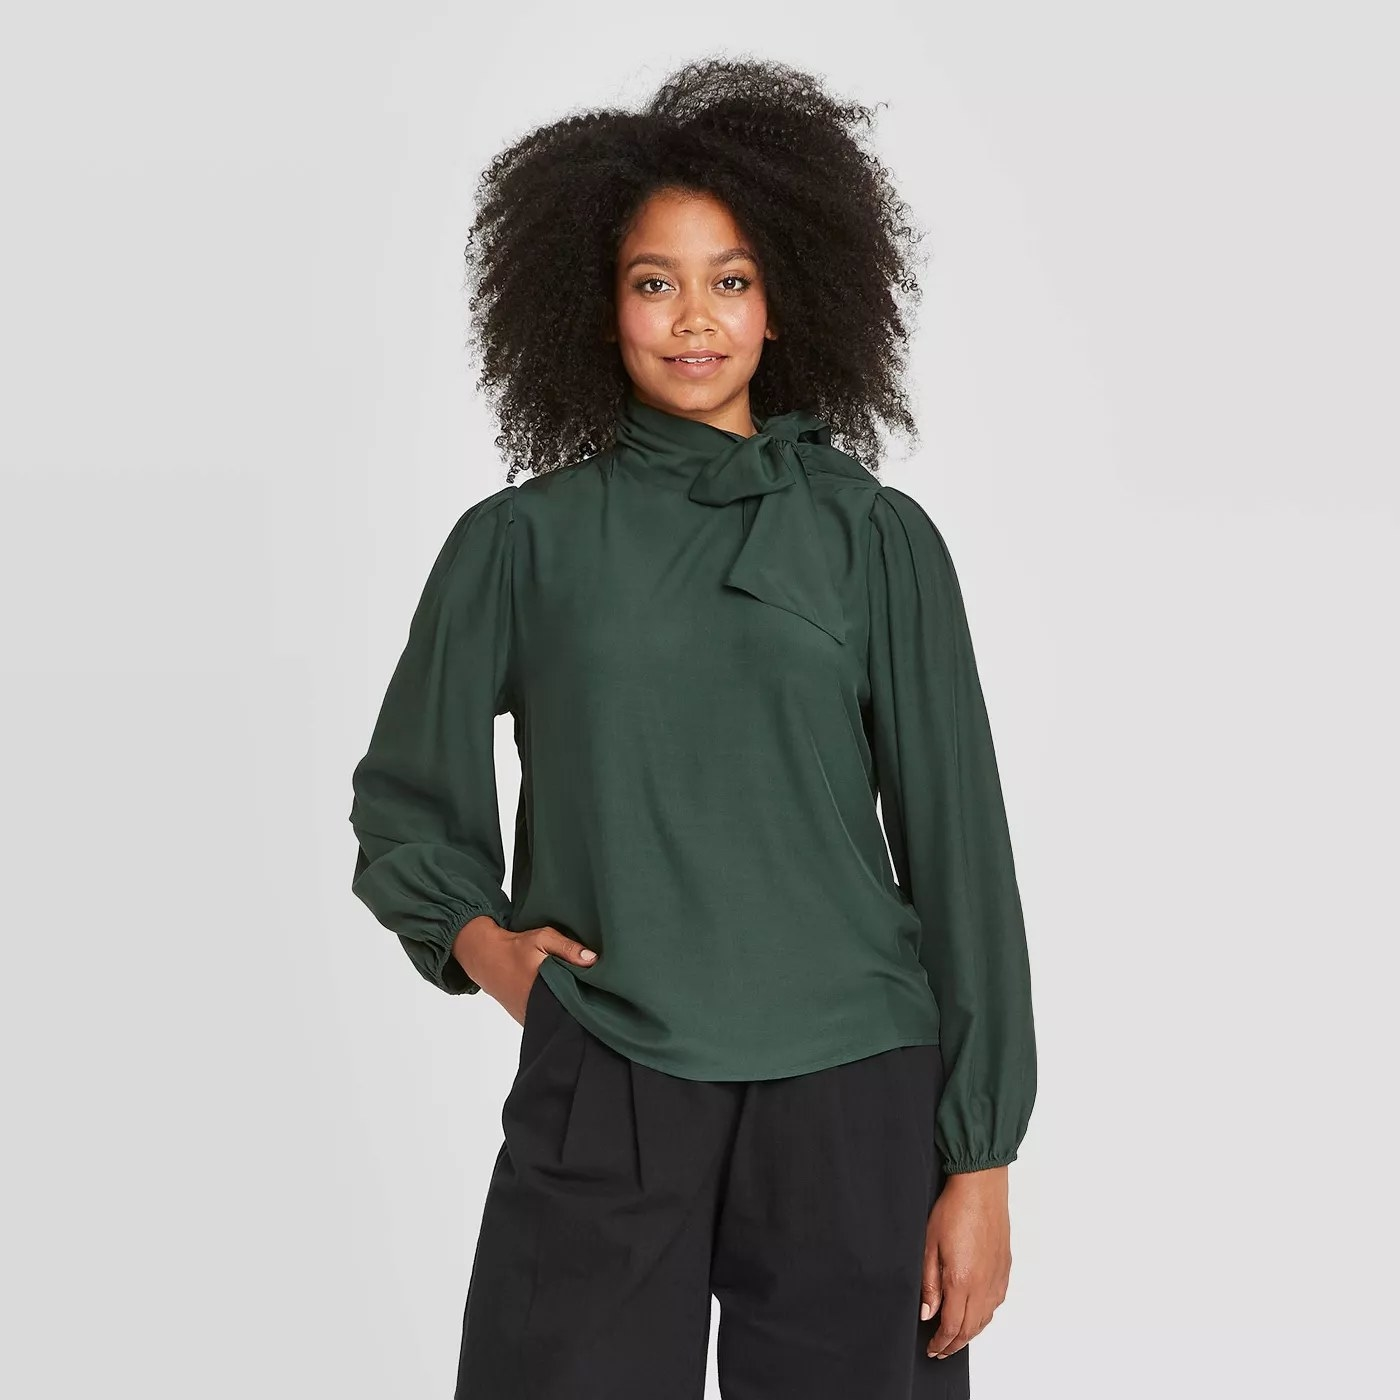 The green, high-necked, long-sleeve blouse